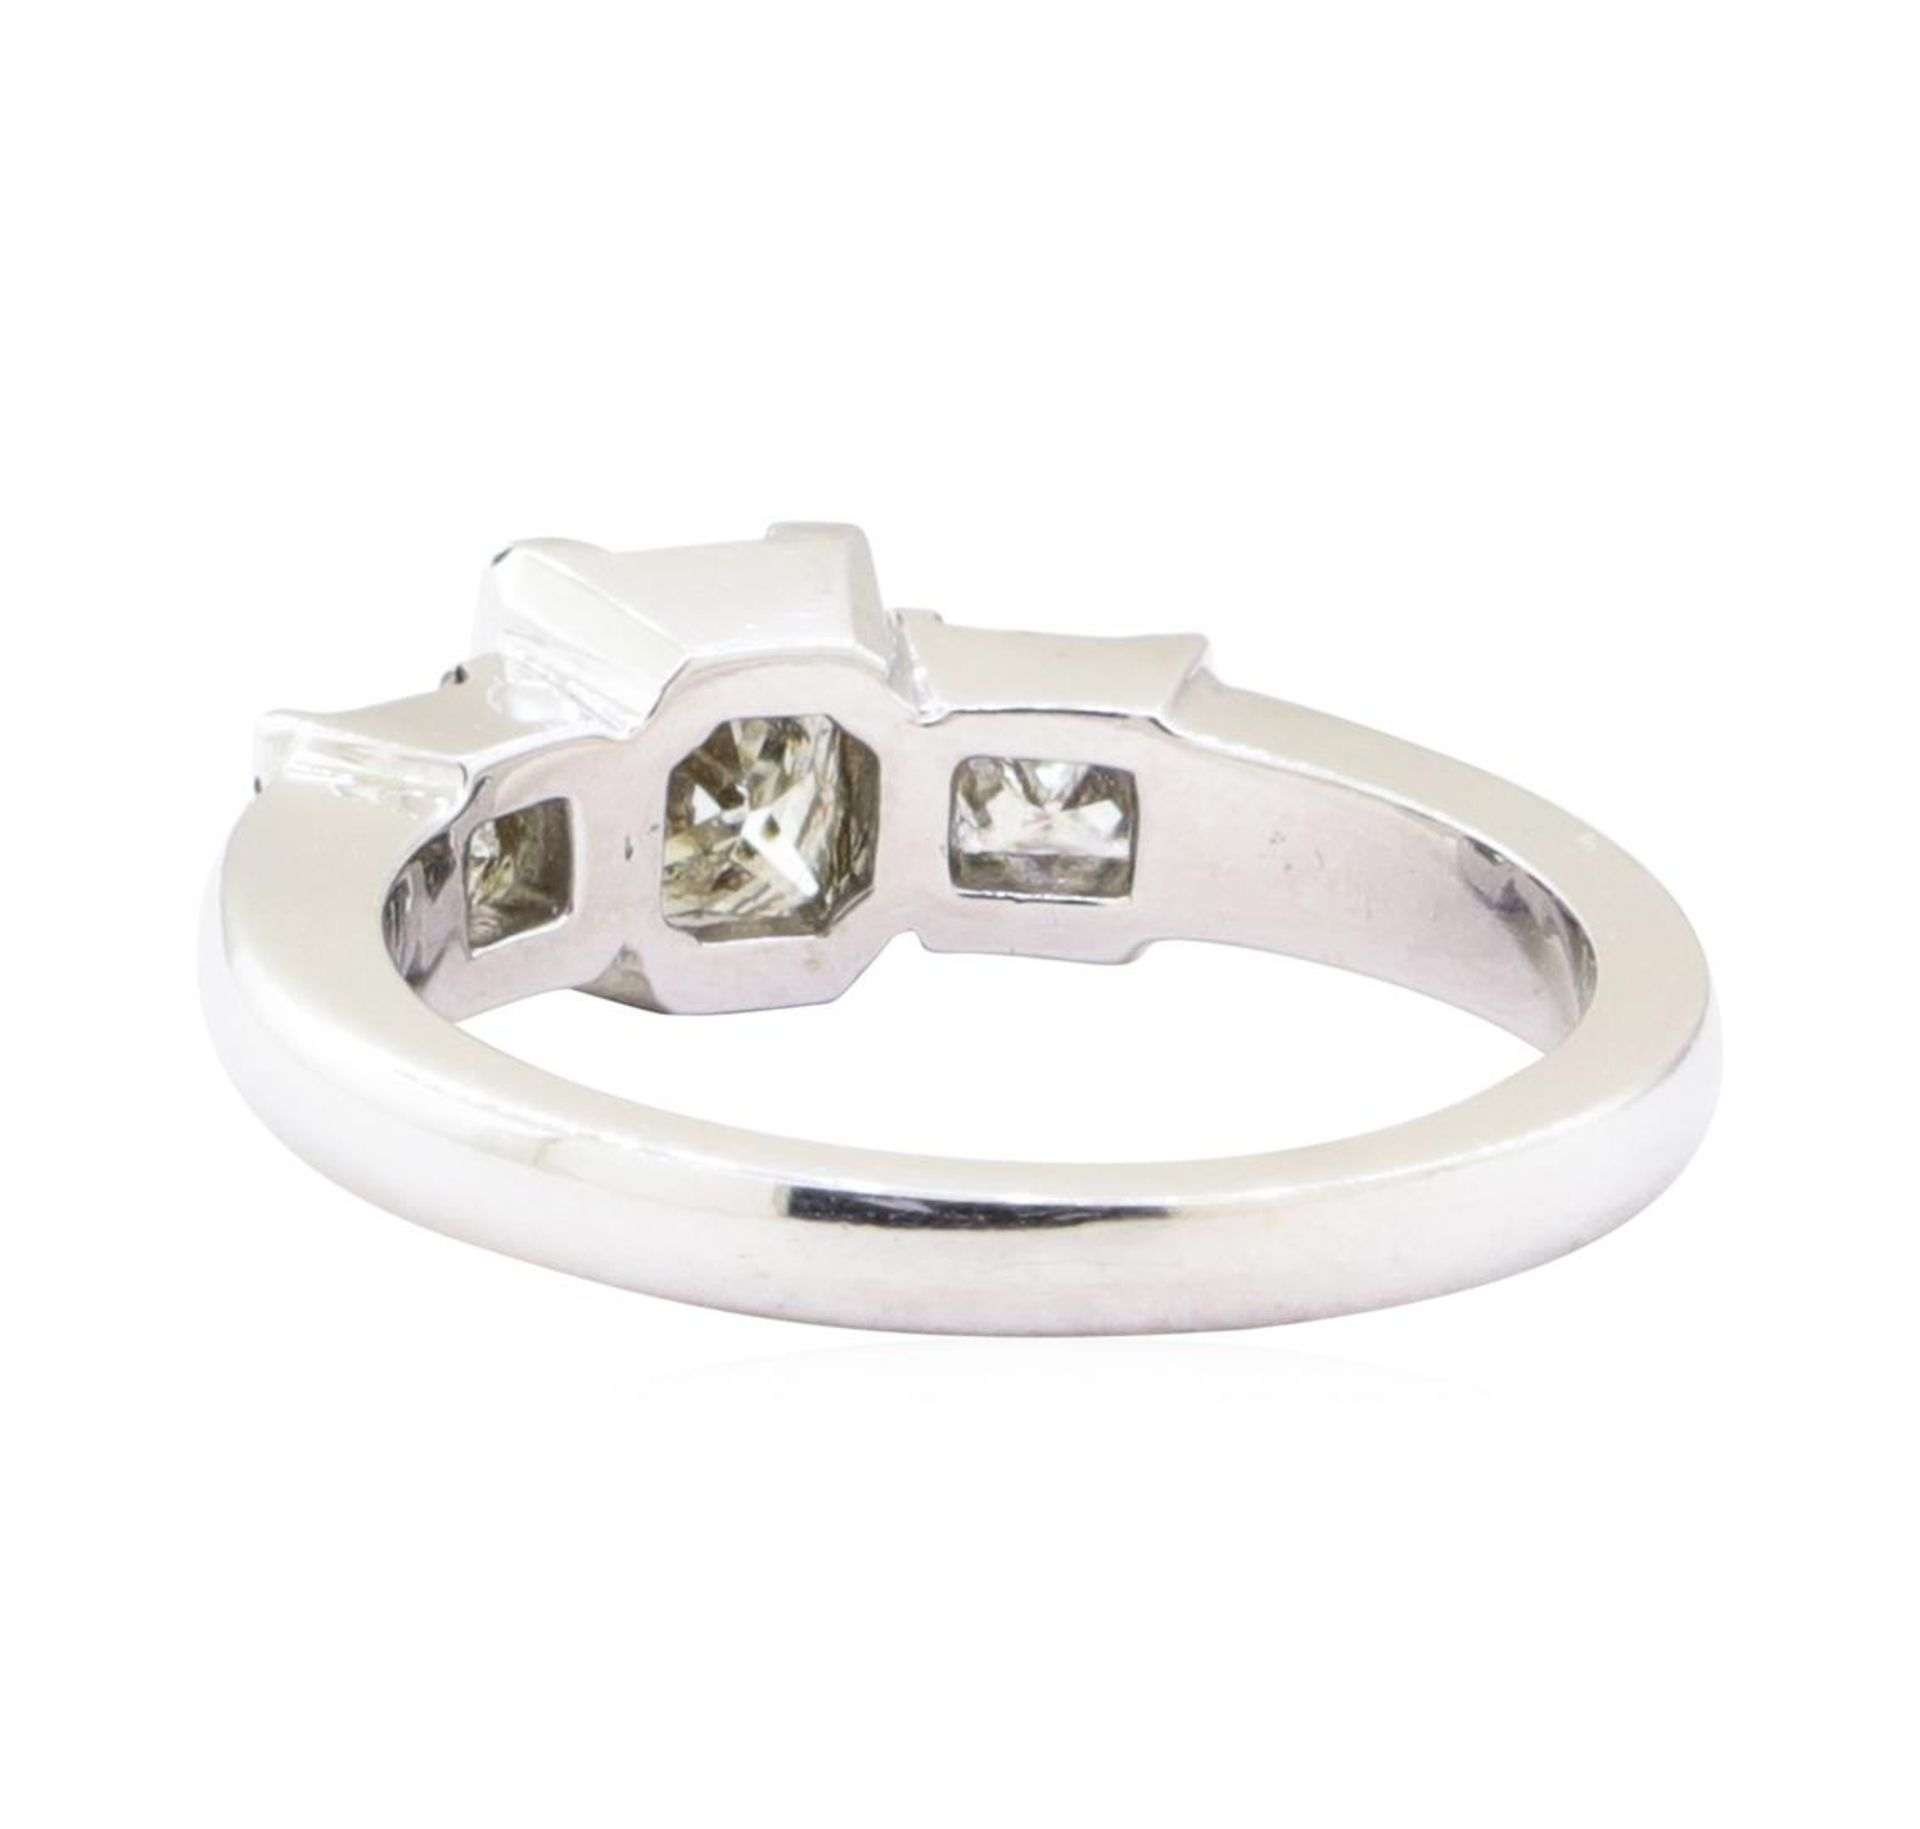 1.45 ctw Diamond Ring - 14KT White Gold - Image 3 of 5